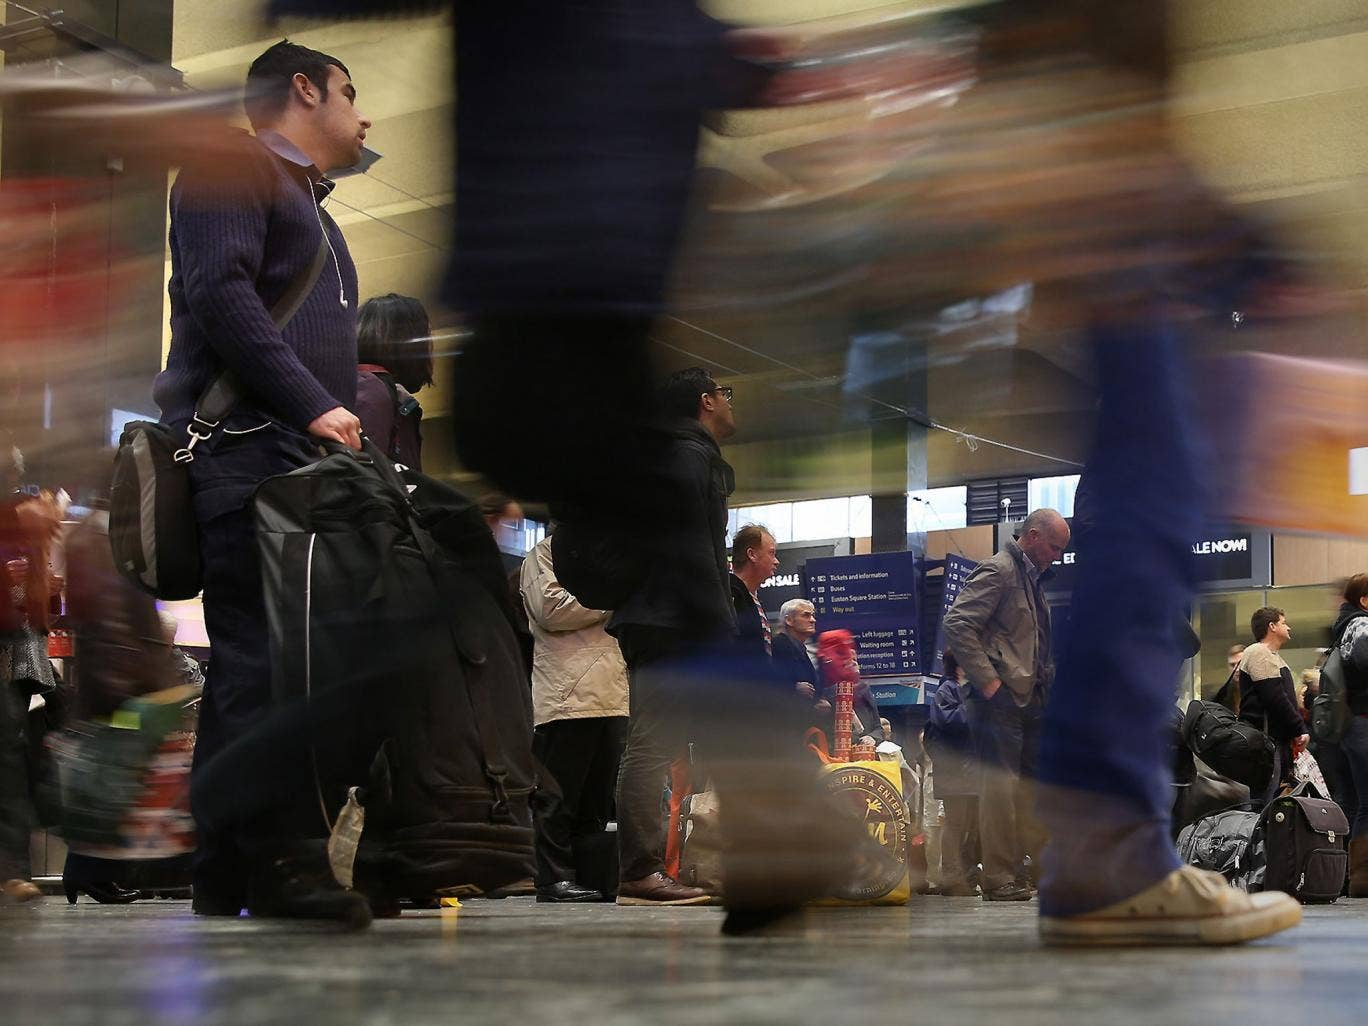 Many adults who go missing lose themselves in the crowds at railway stations